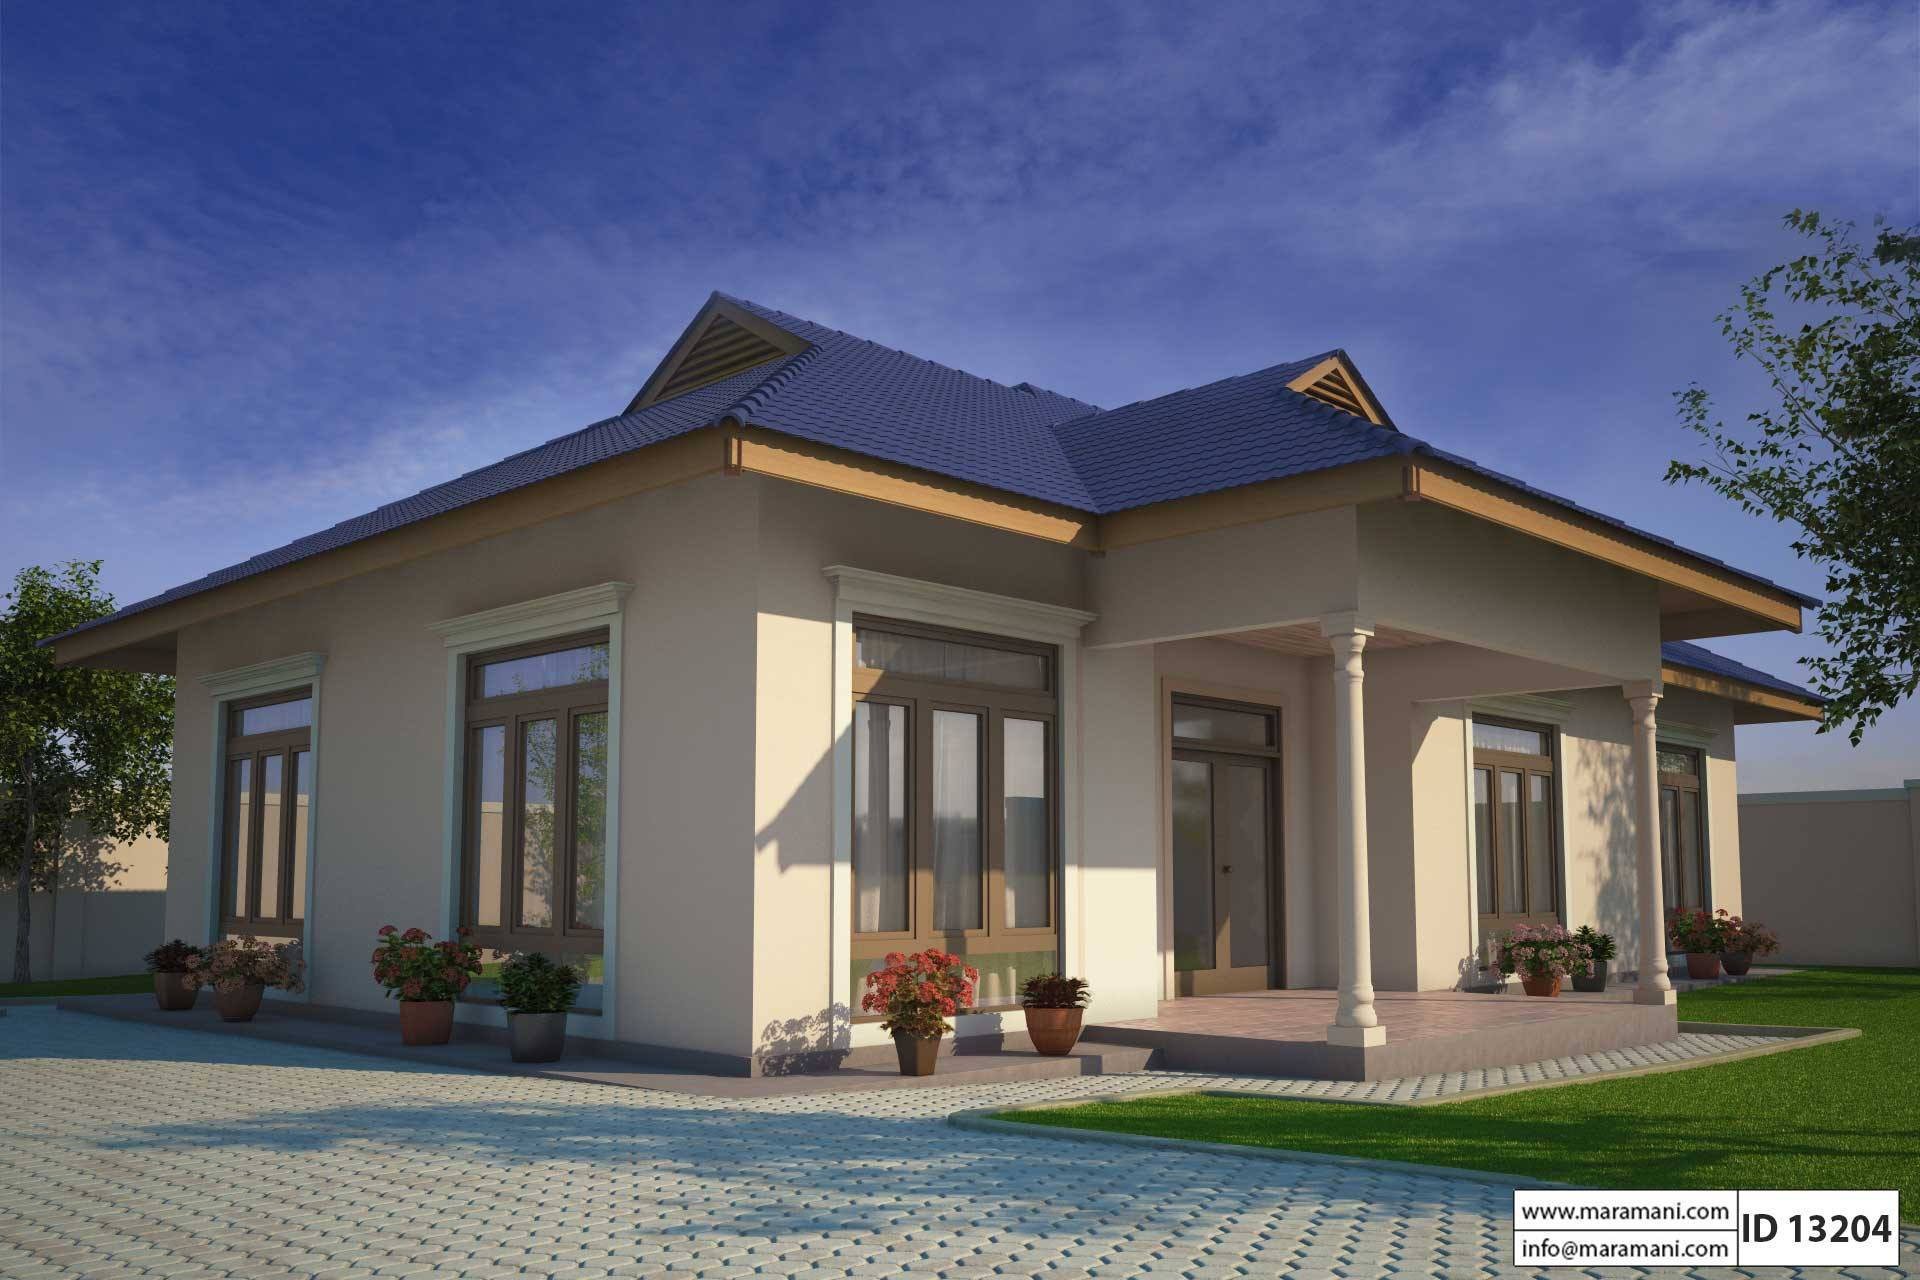 Three bedroom house plans images